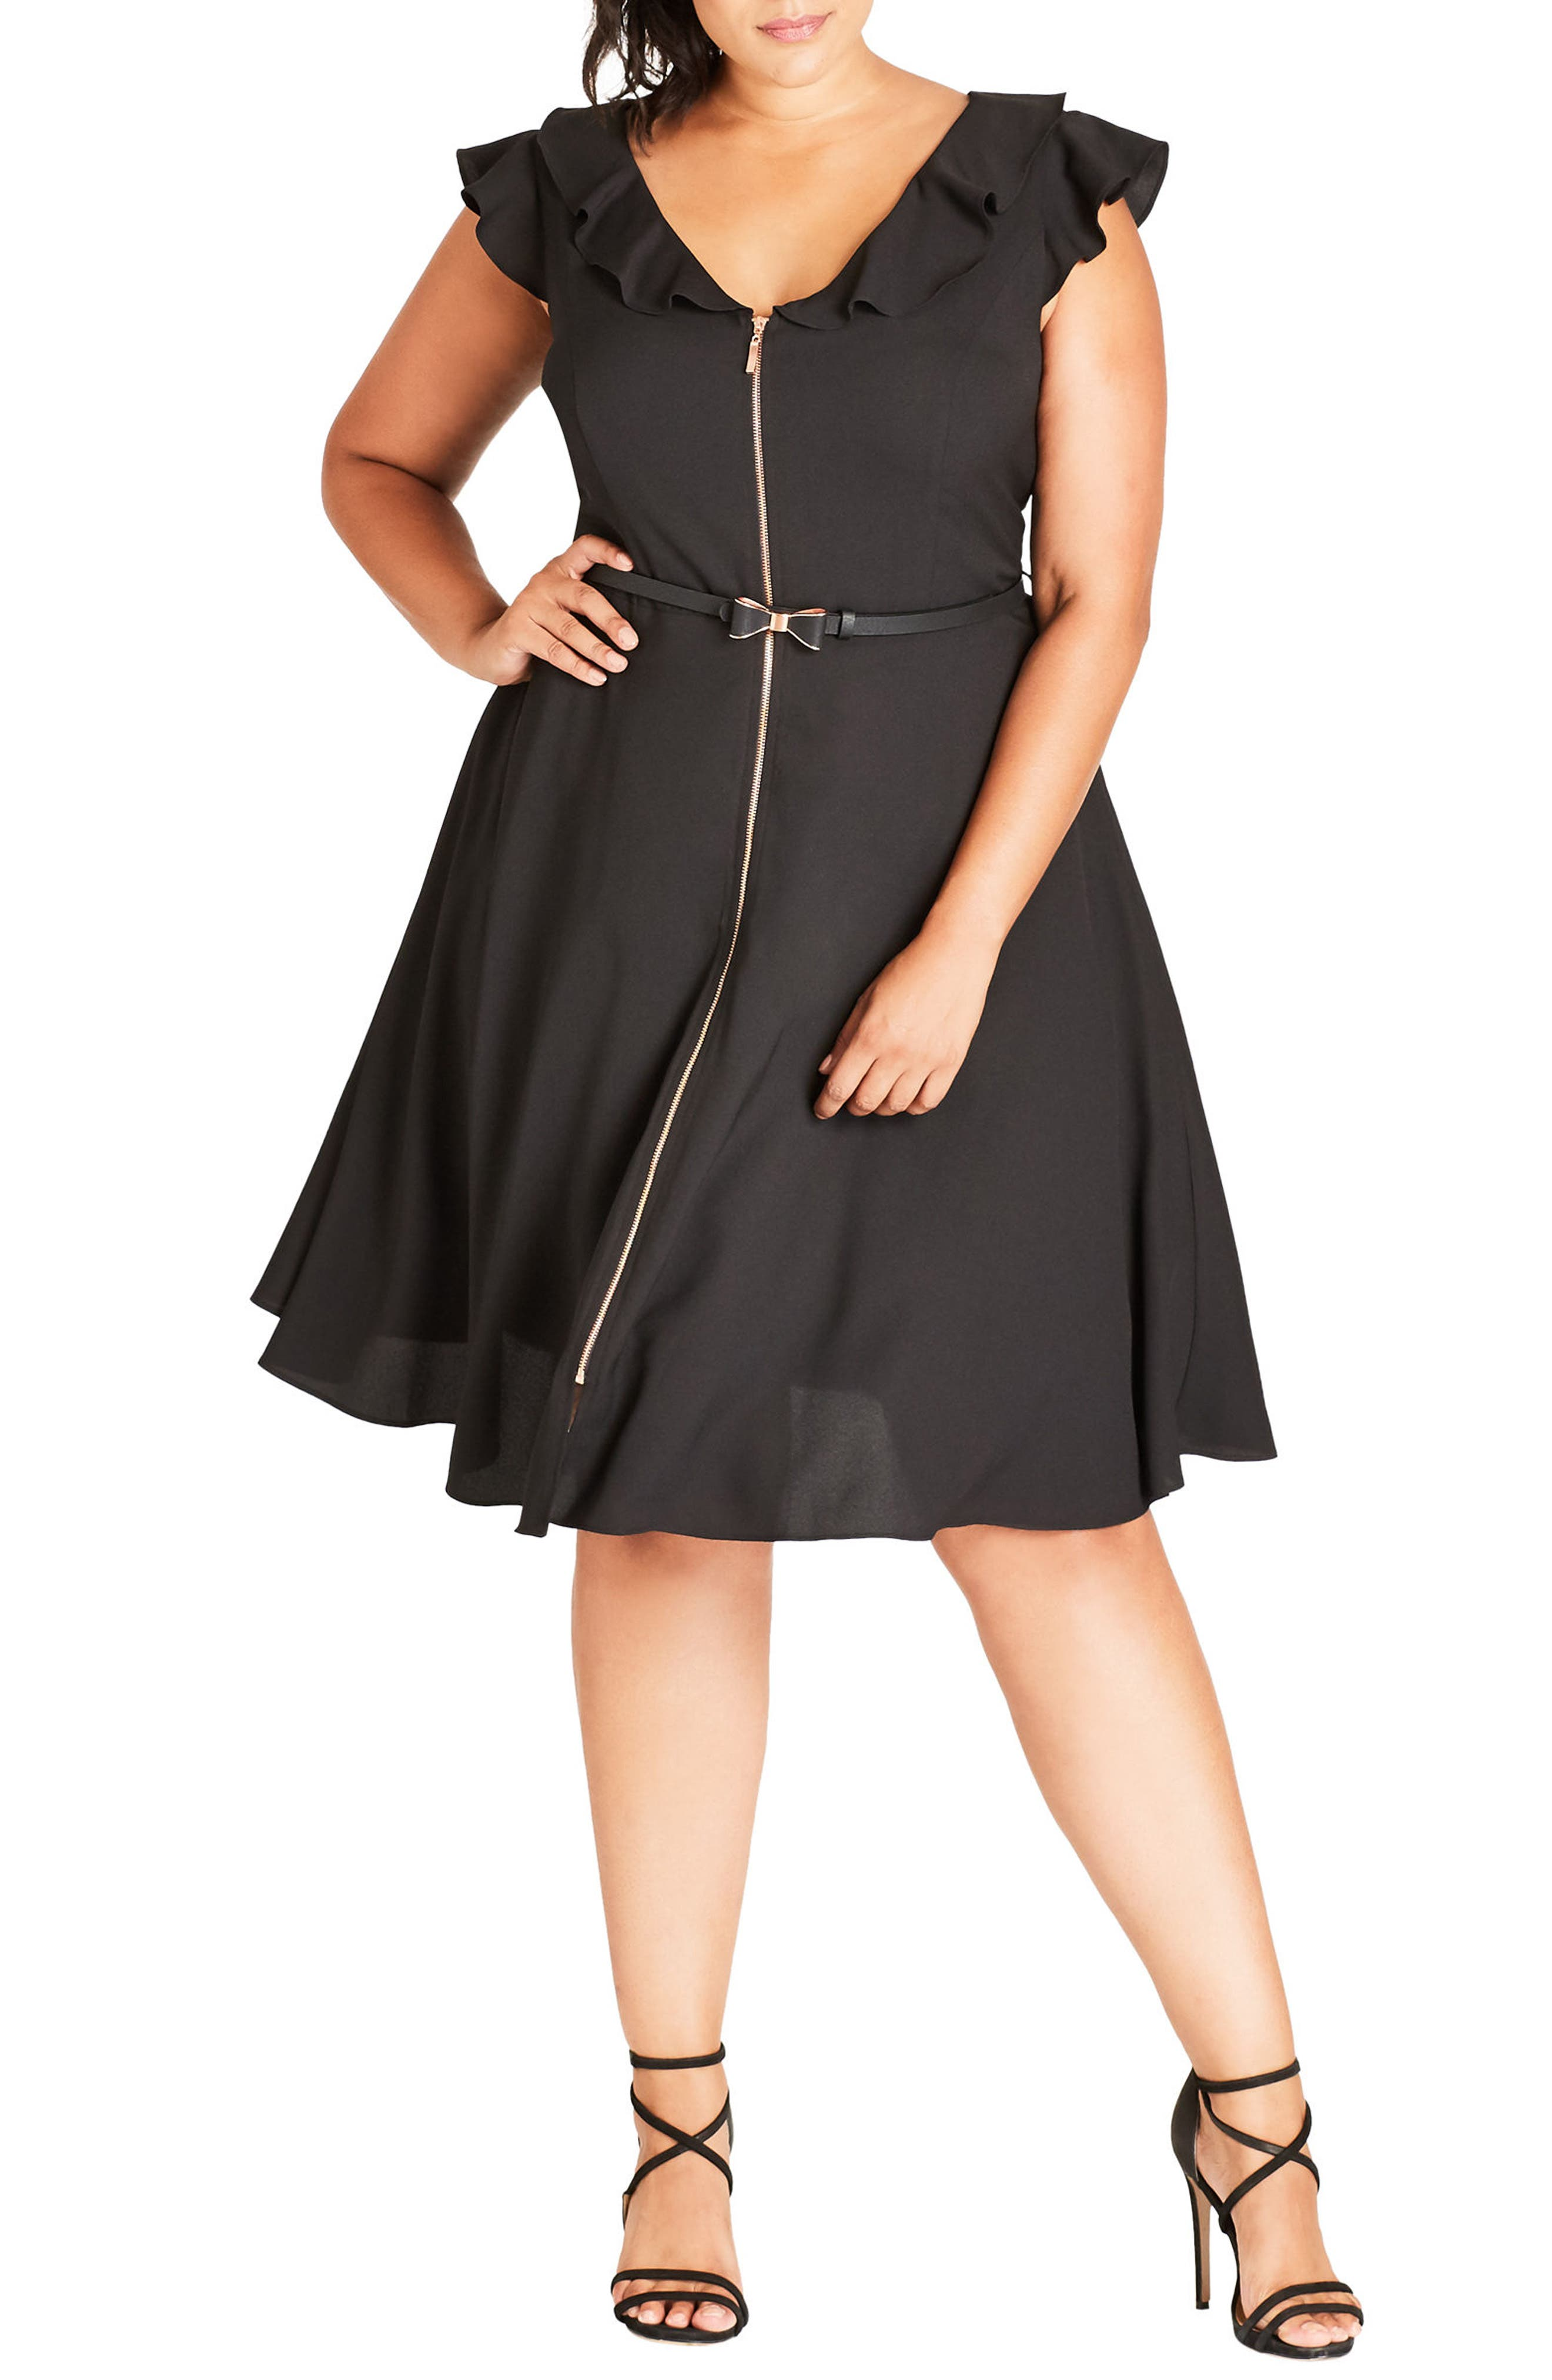 Alternate Image 1 Selected - City Chic Pretty Bow Fit & Flare Dress (Plus Size)